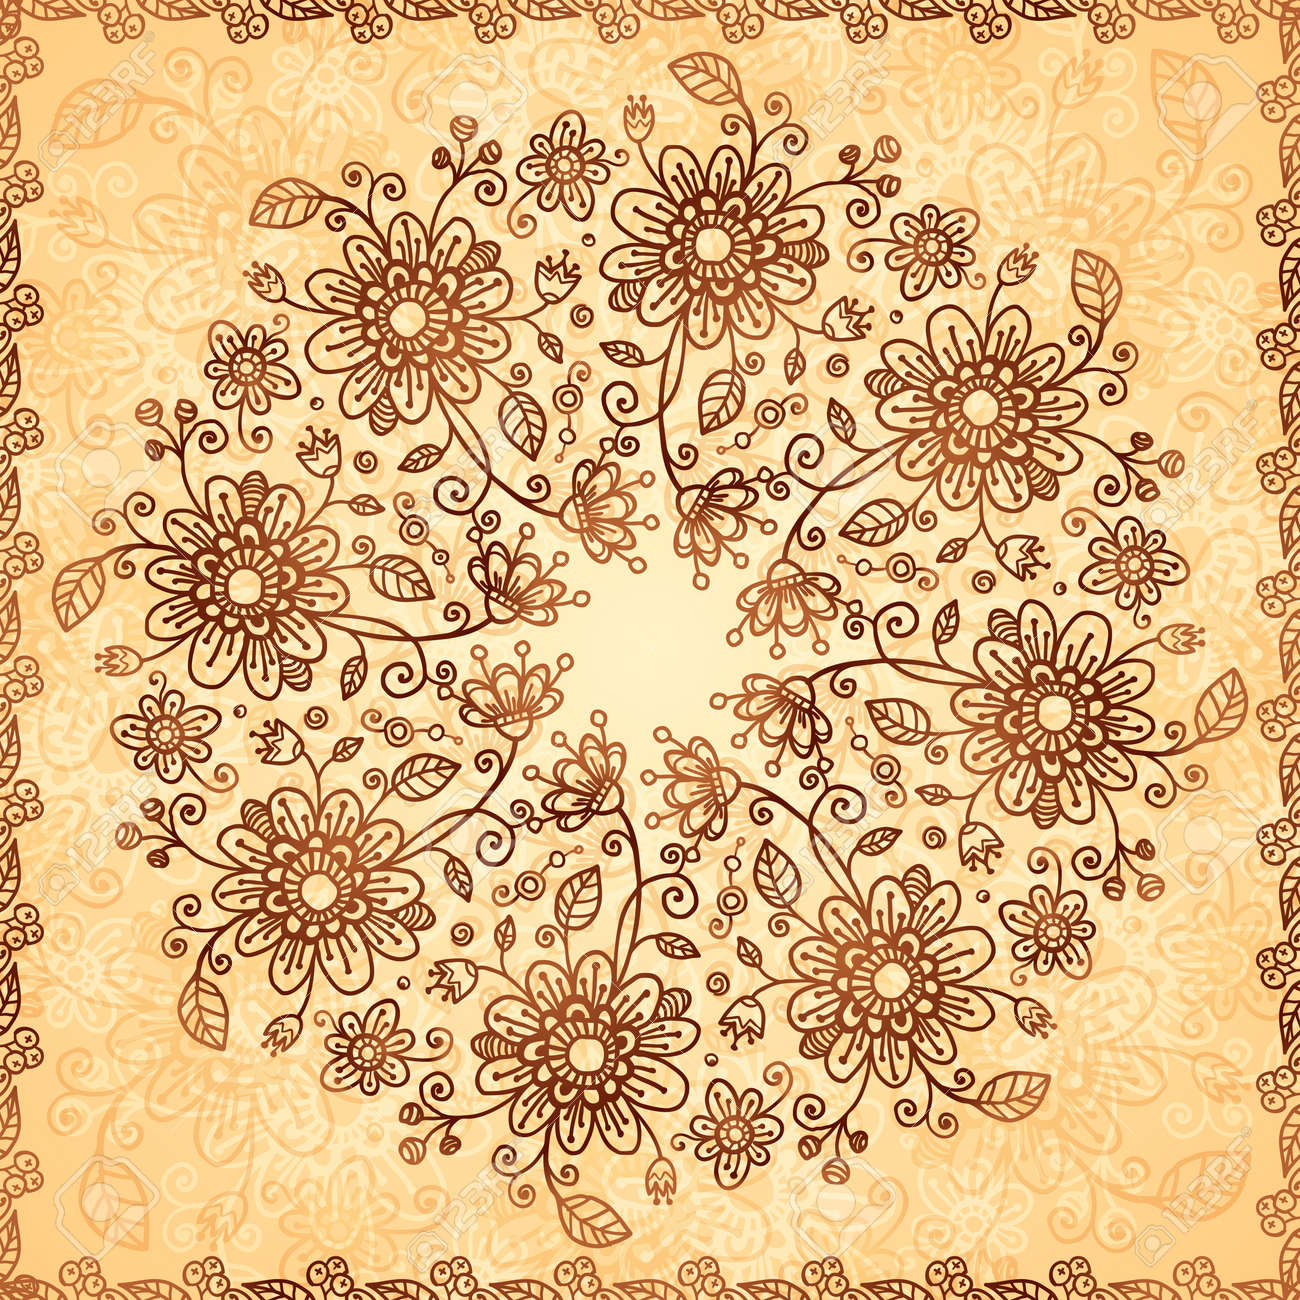 Ornate  doodle flowers background Stock Vector - 17439390